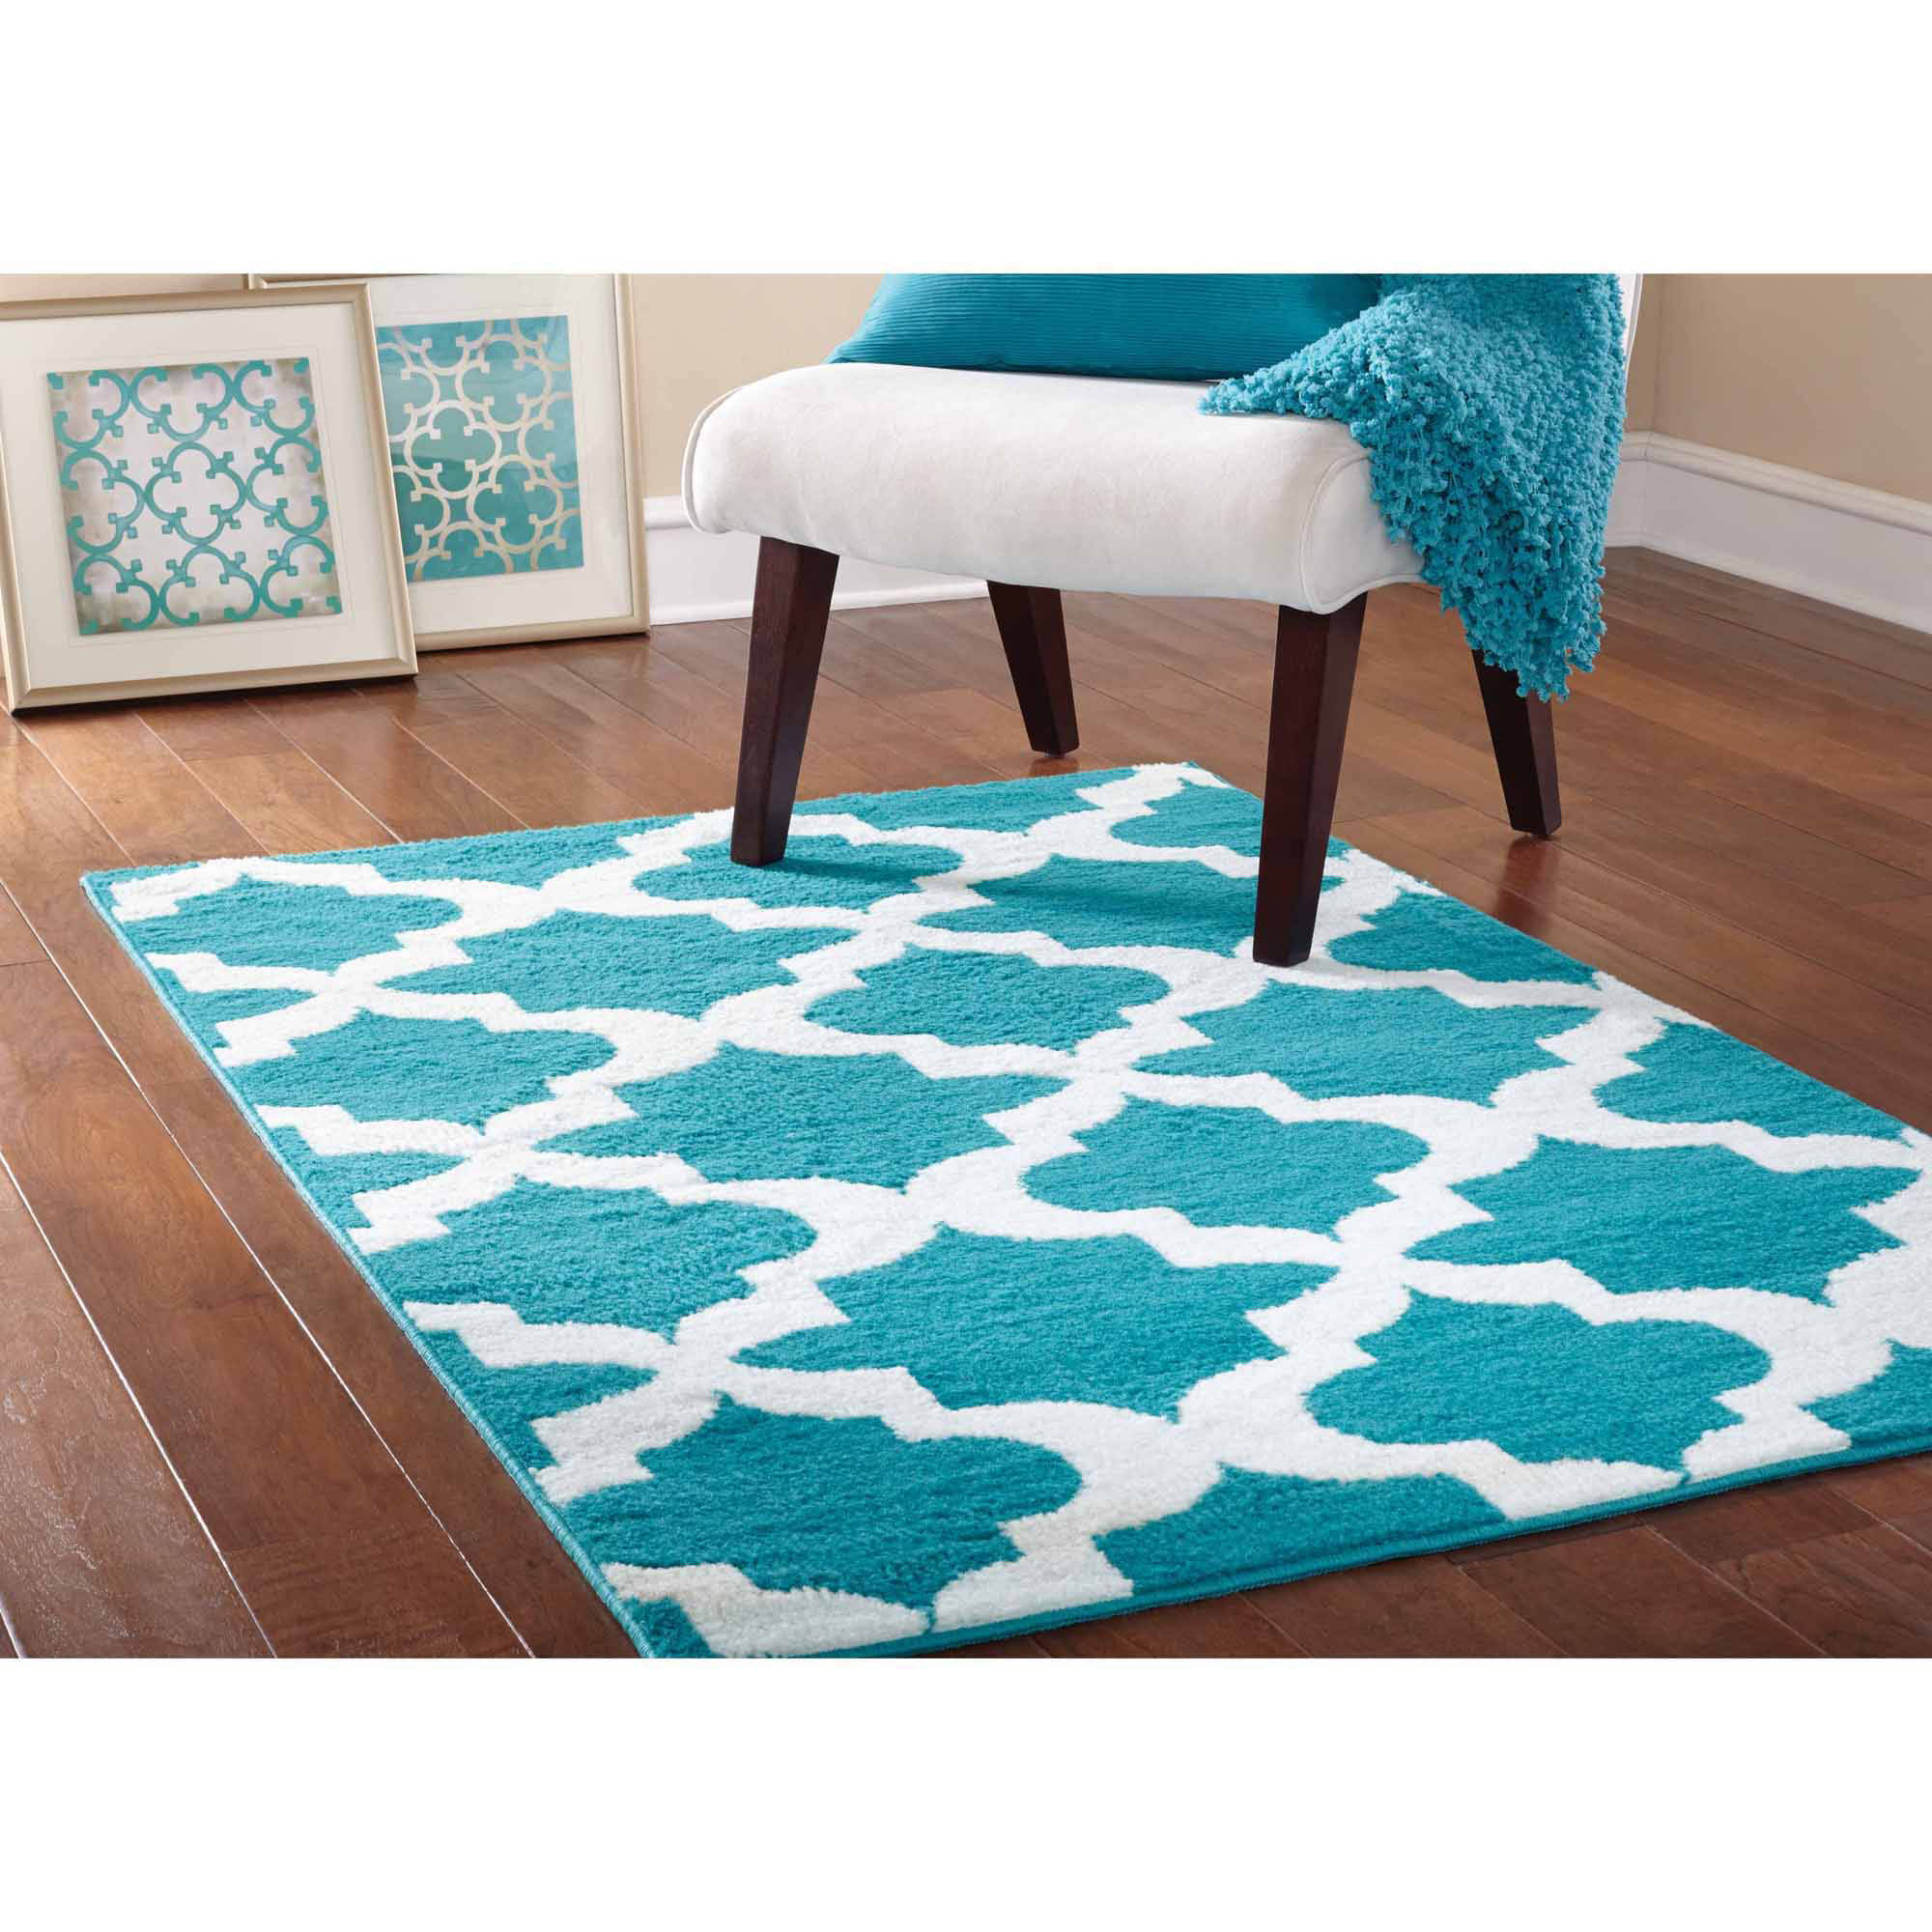 Mainstays Quatrefoil Area Rug Available In Multiple Colors